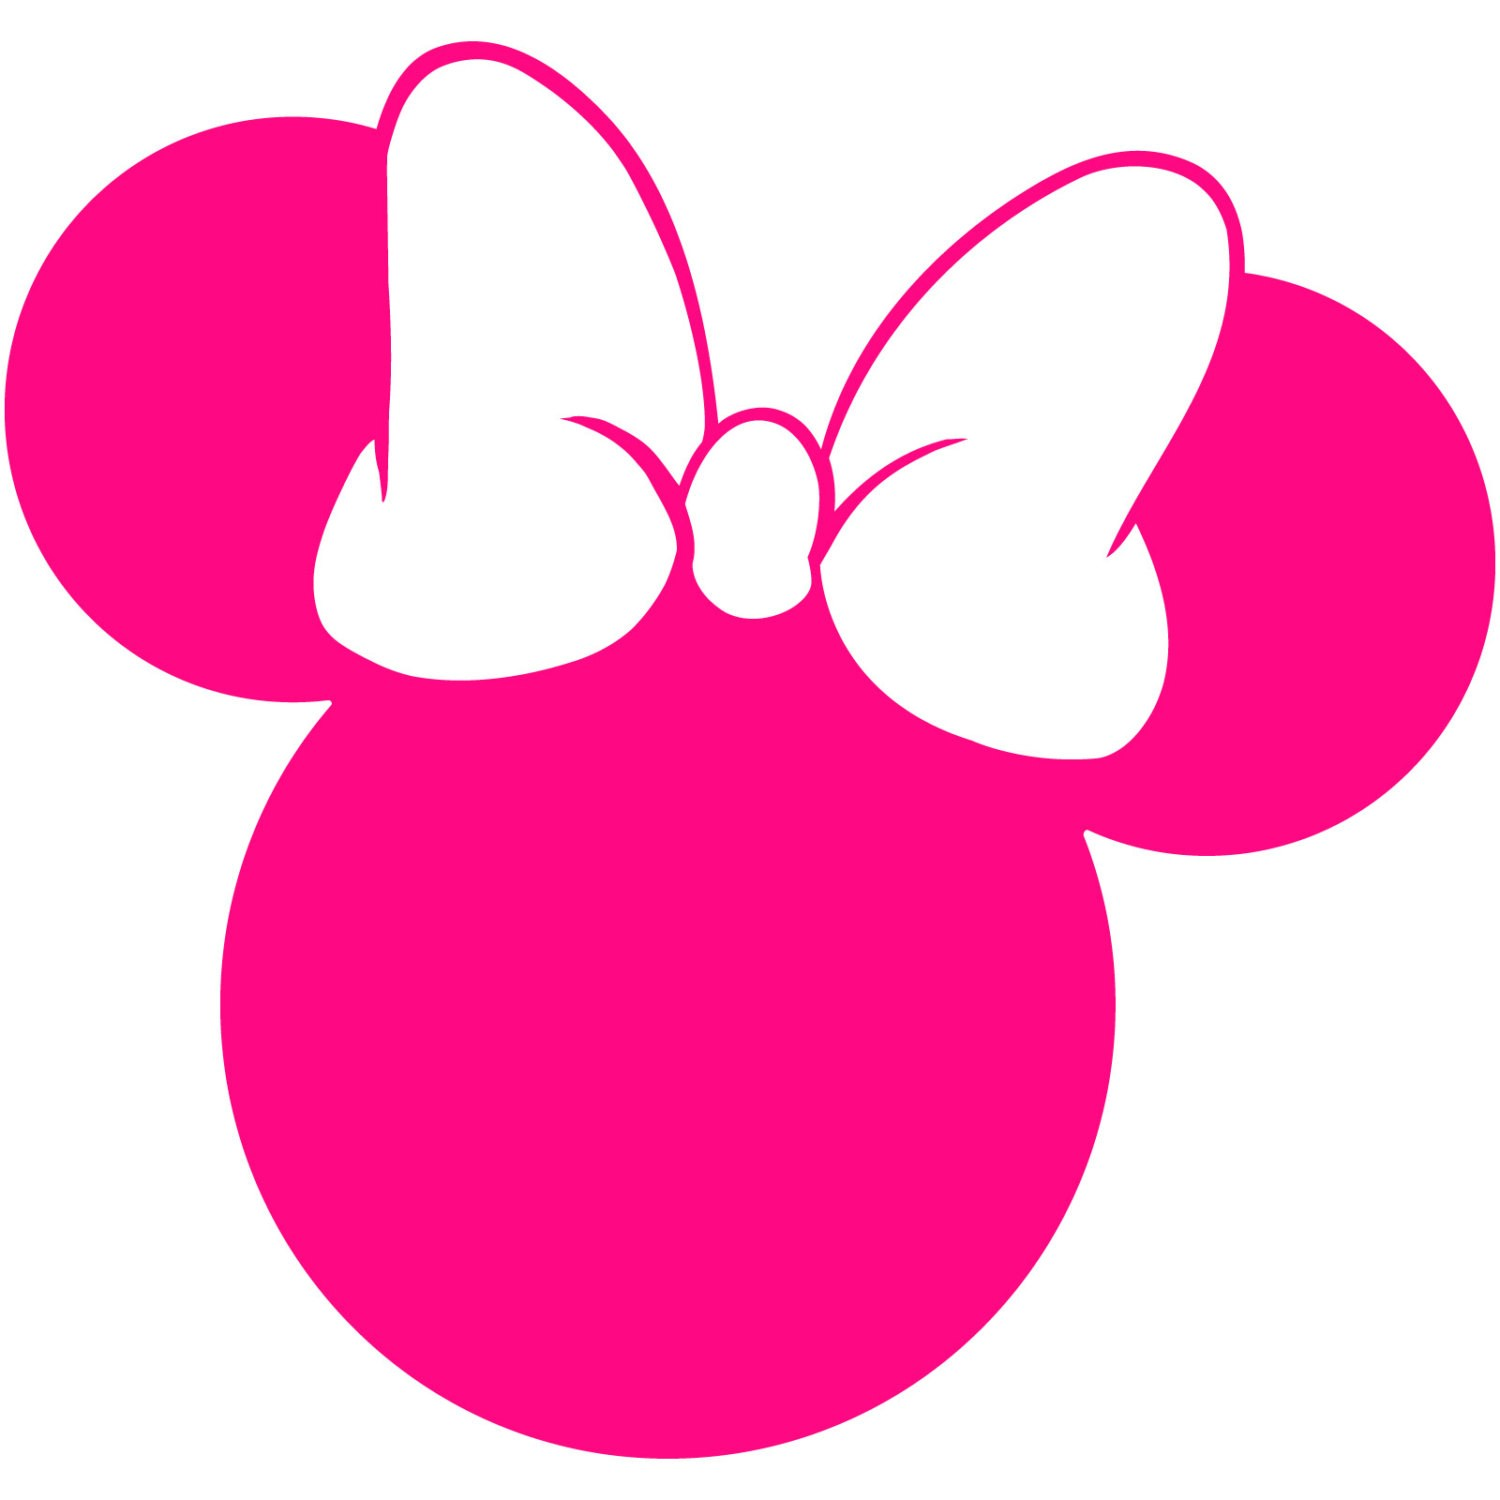 Minnie Mouse Head Outline Free Download Clip Art.